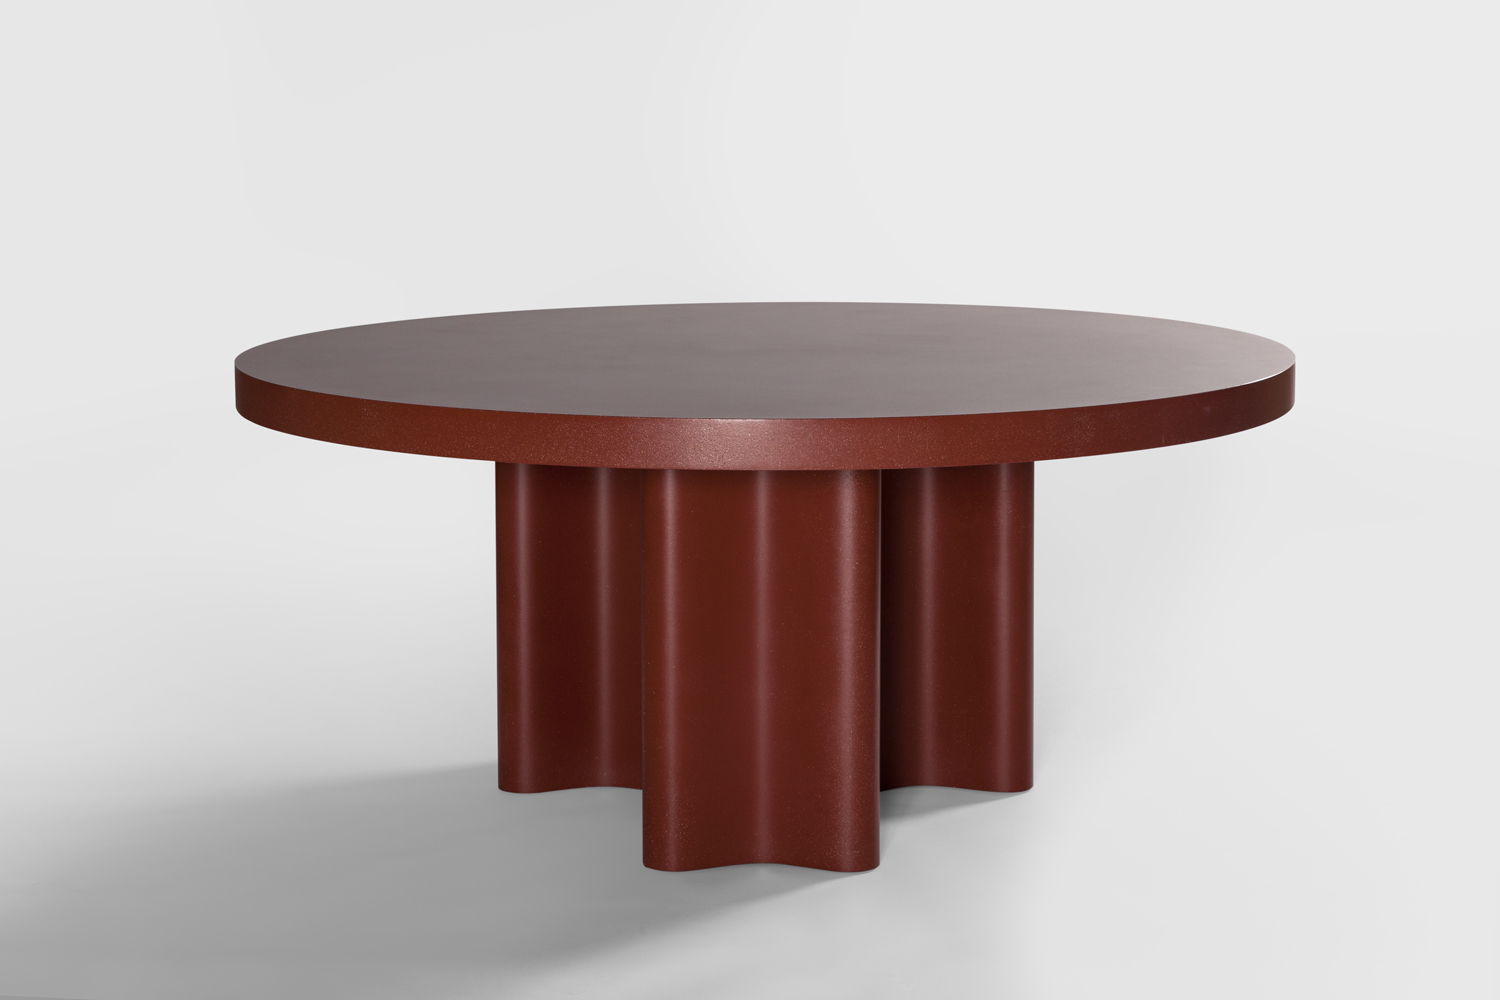 AZO Table by François Bauchet for Galerie Kreo at Design Miami Basel 2017   Yellowtrace